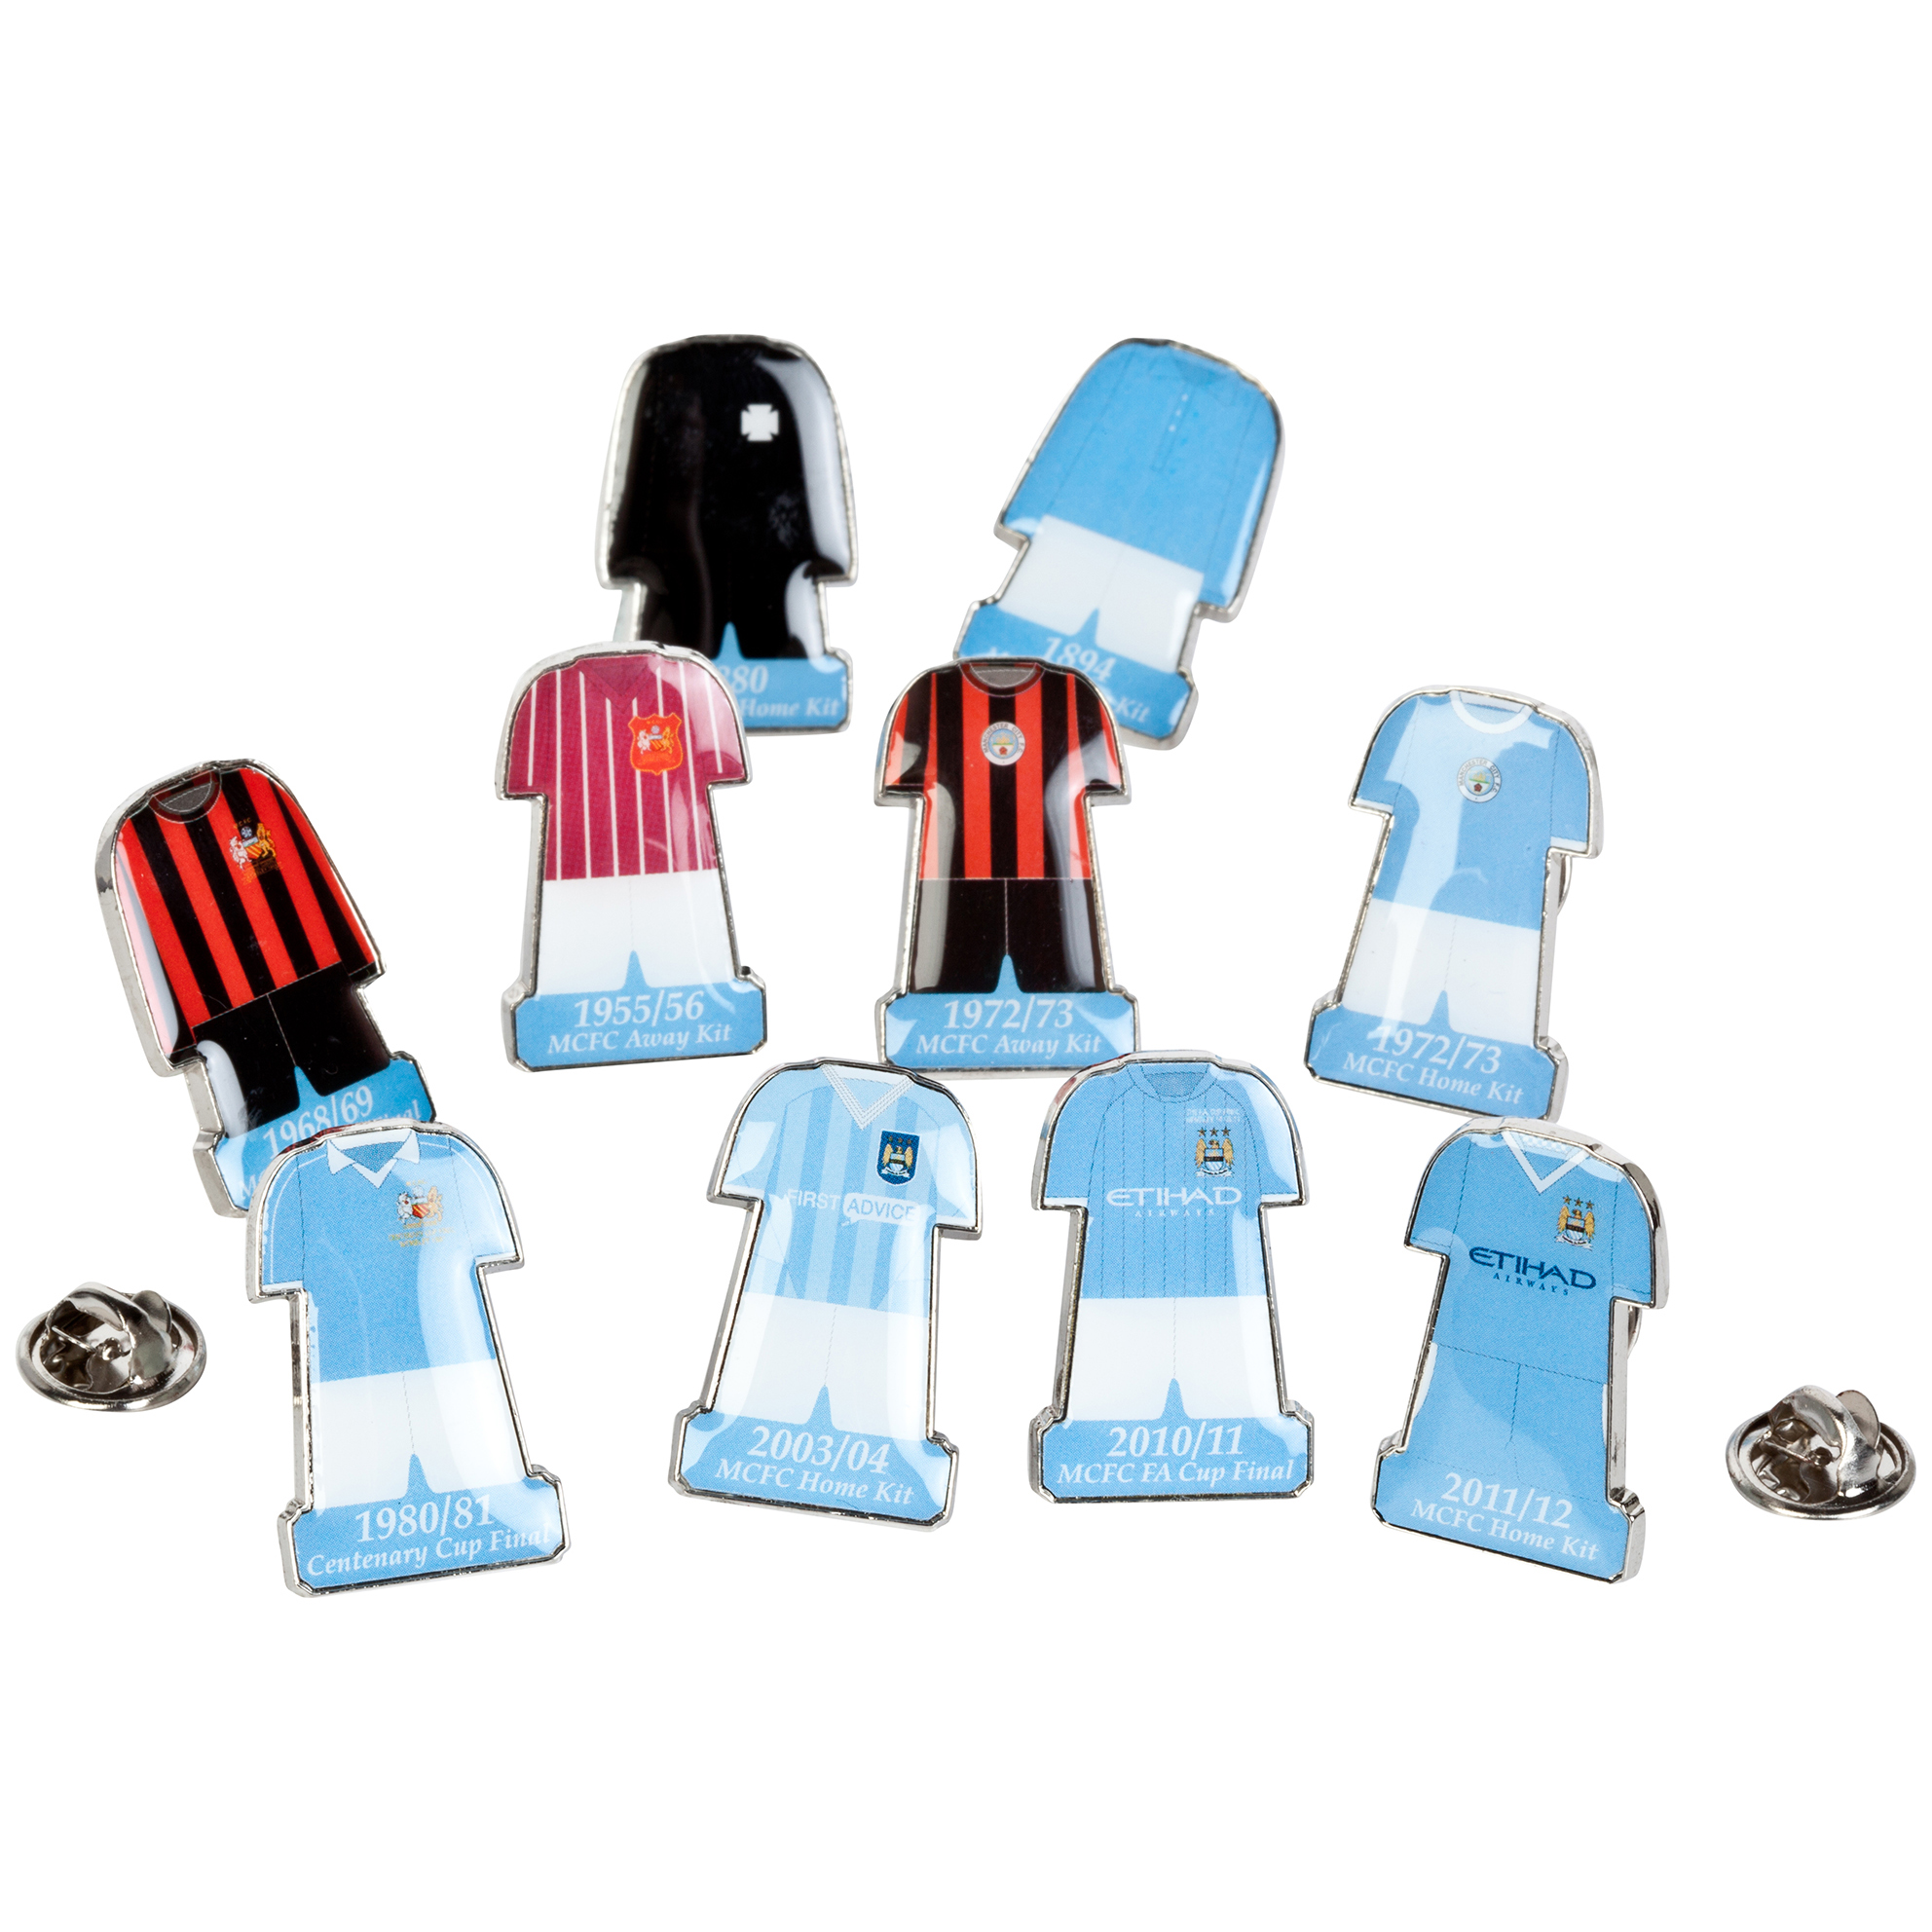 Manchester City Retro Kit Badge Gift Set